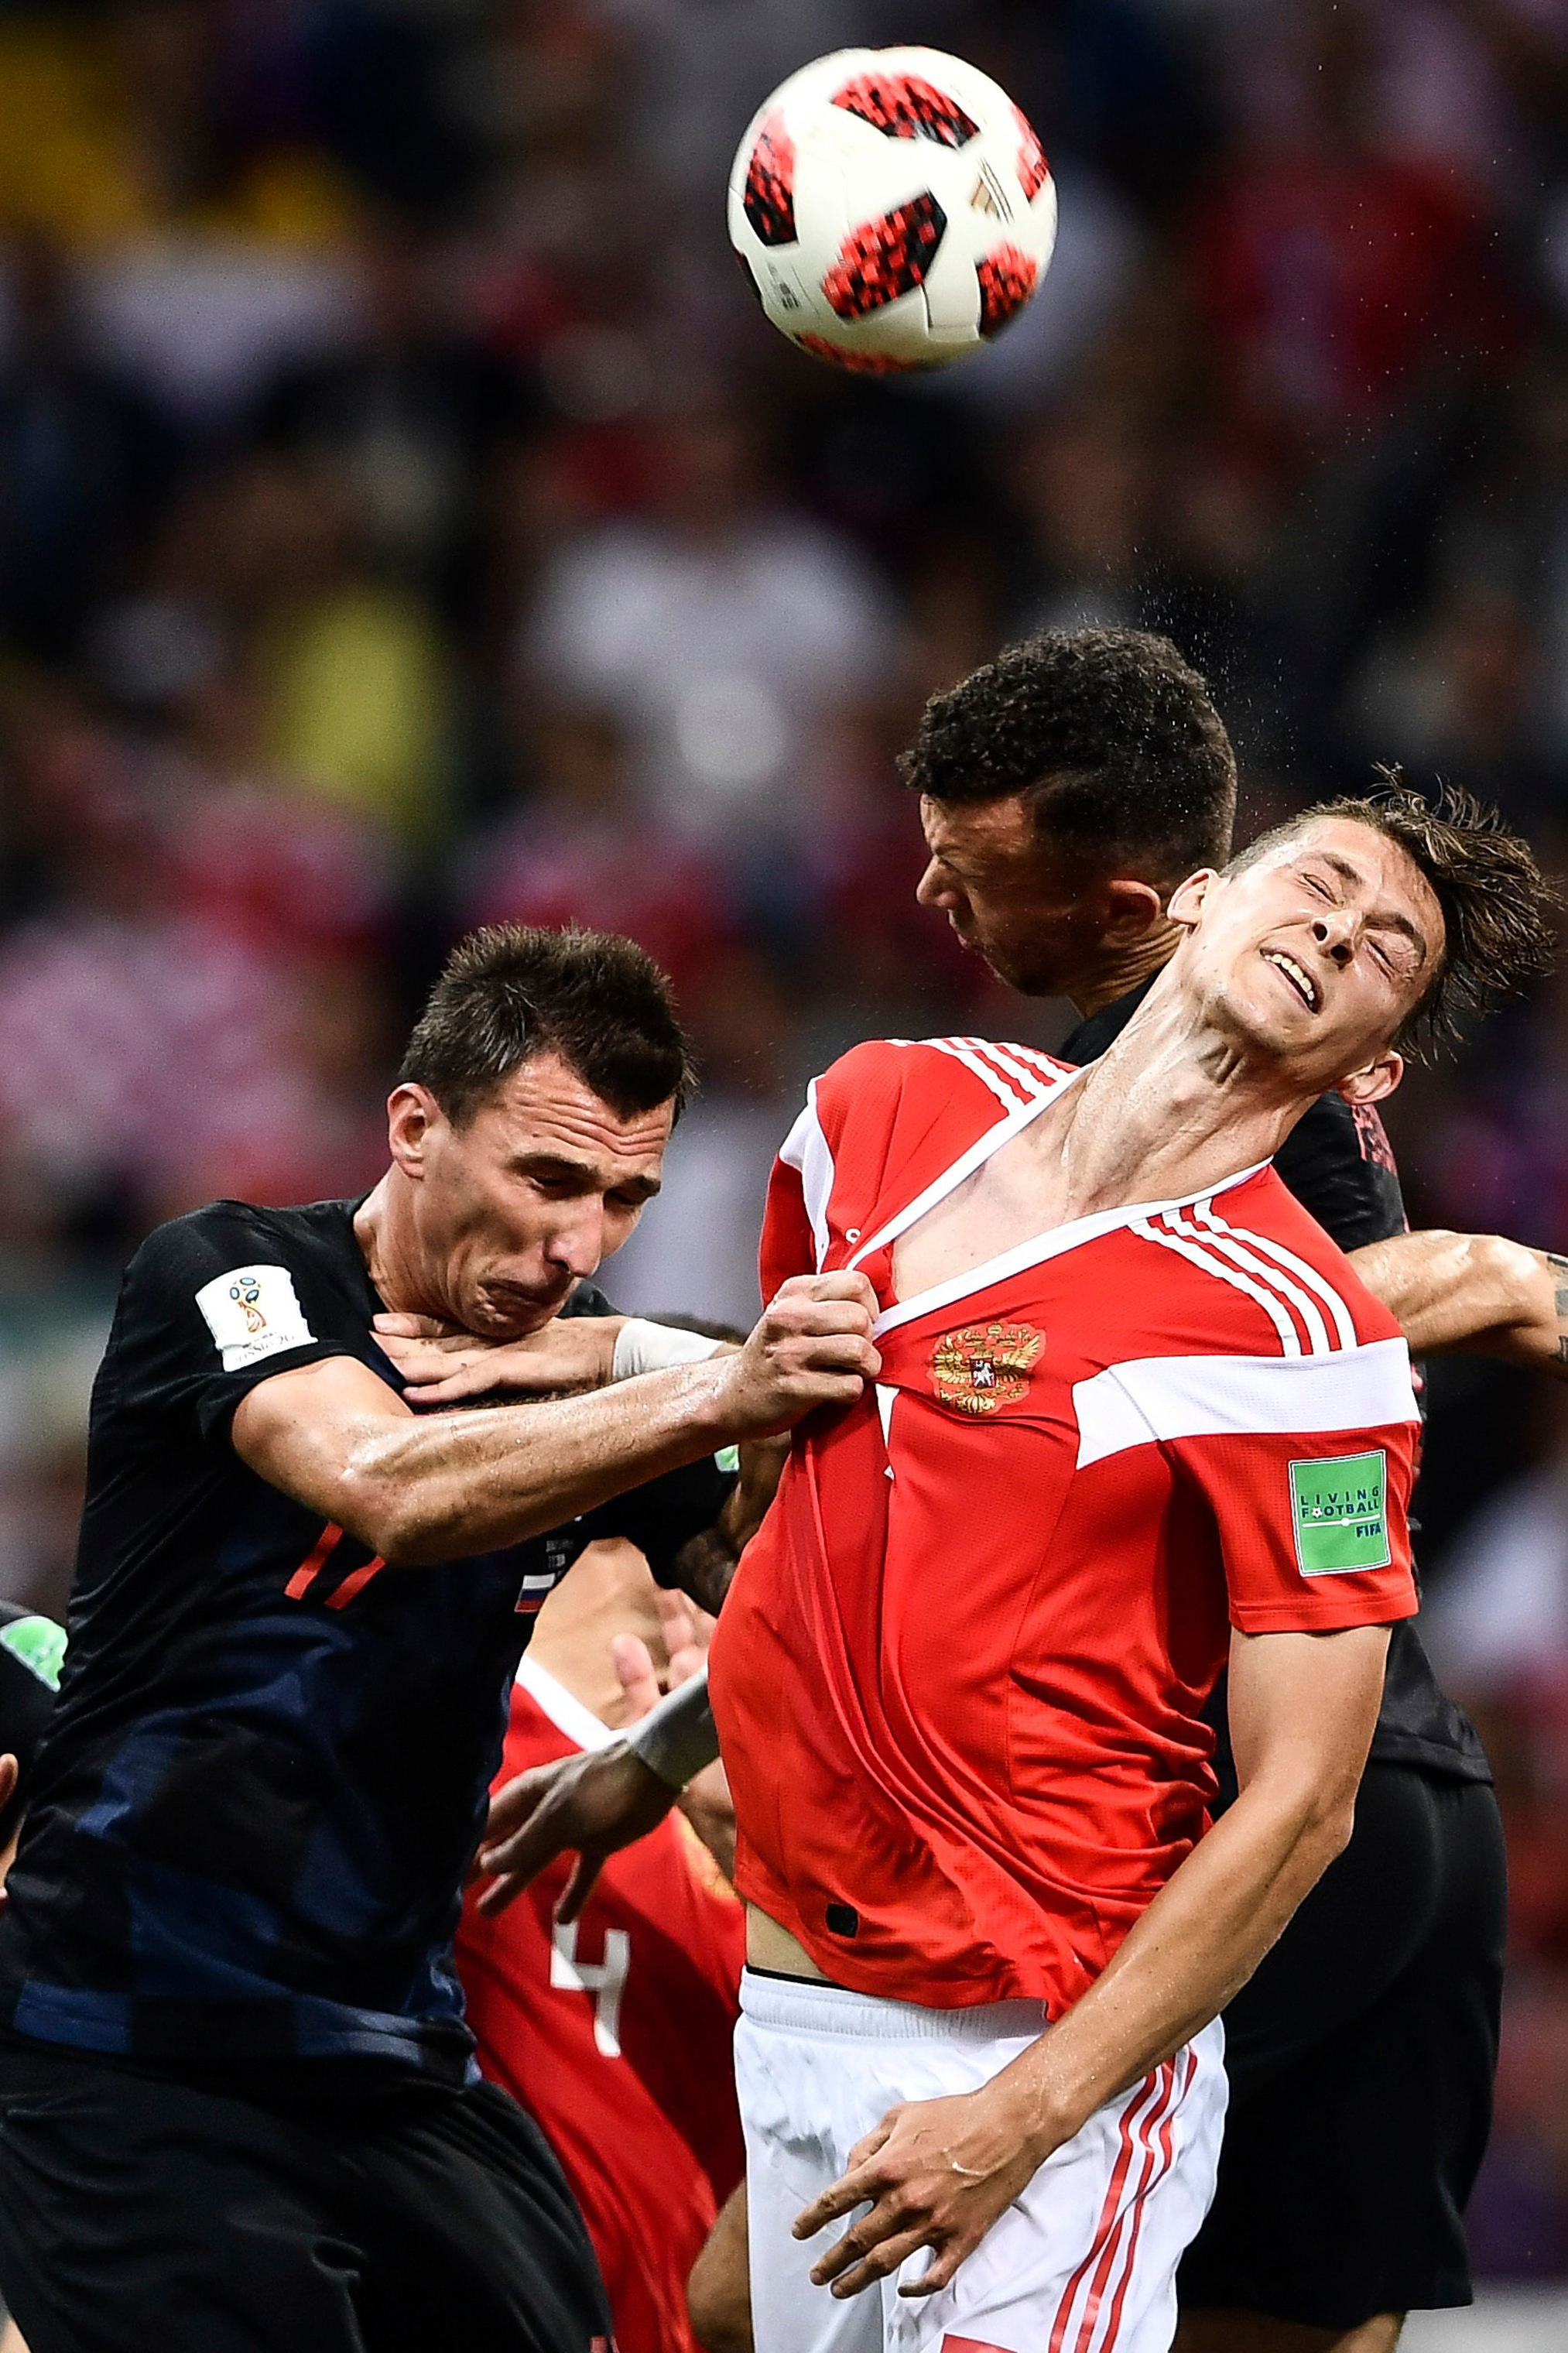 Aleksandr Golovin of Croatia, left, challenges a Russian player in their quarterfinal match on July 7, 2018.